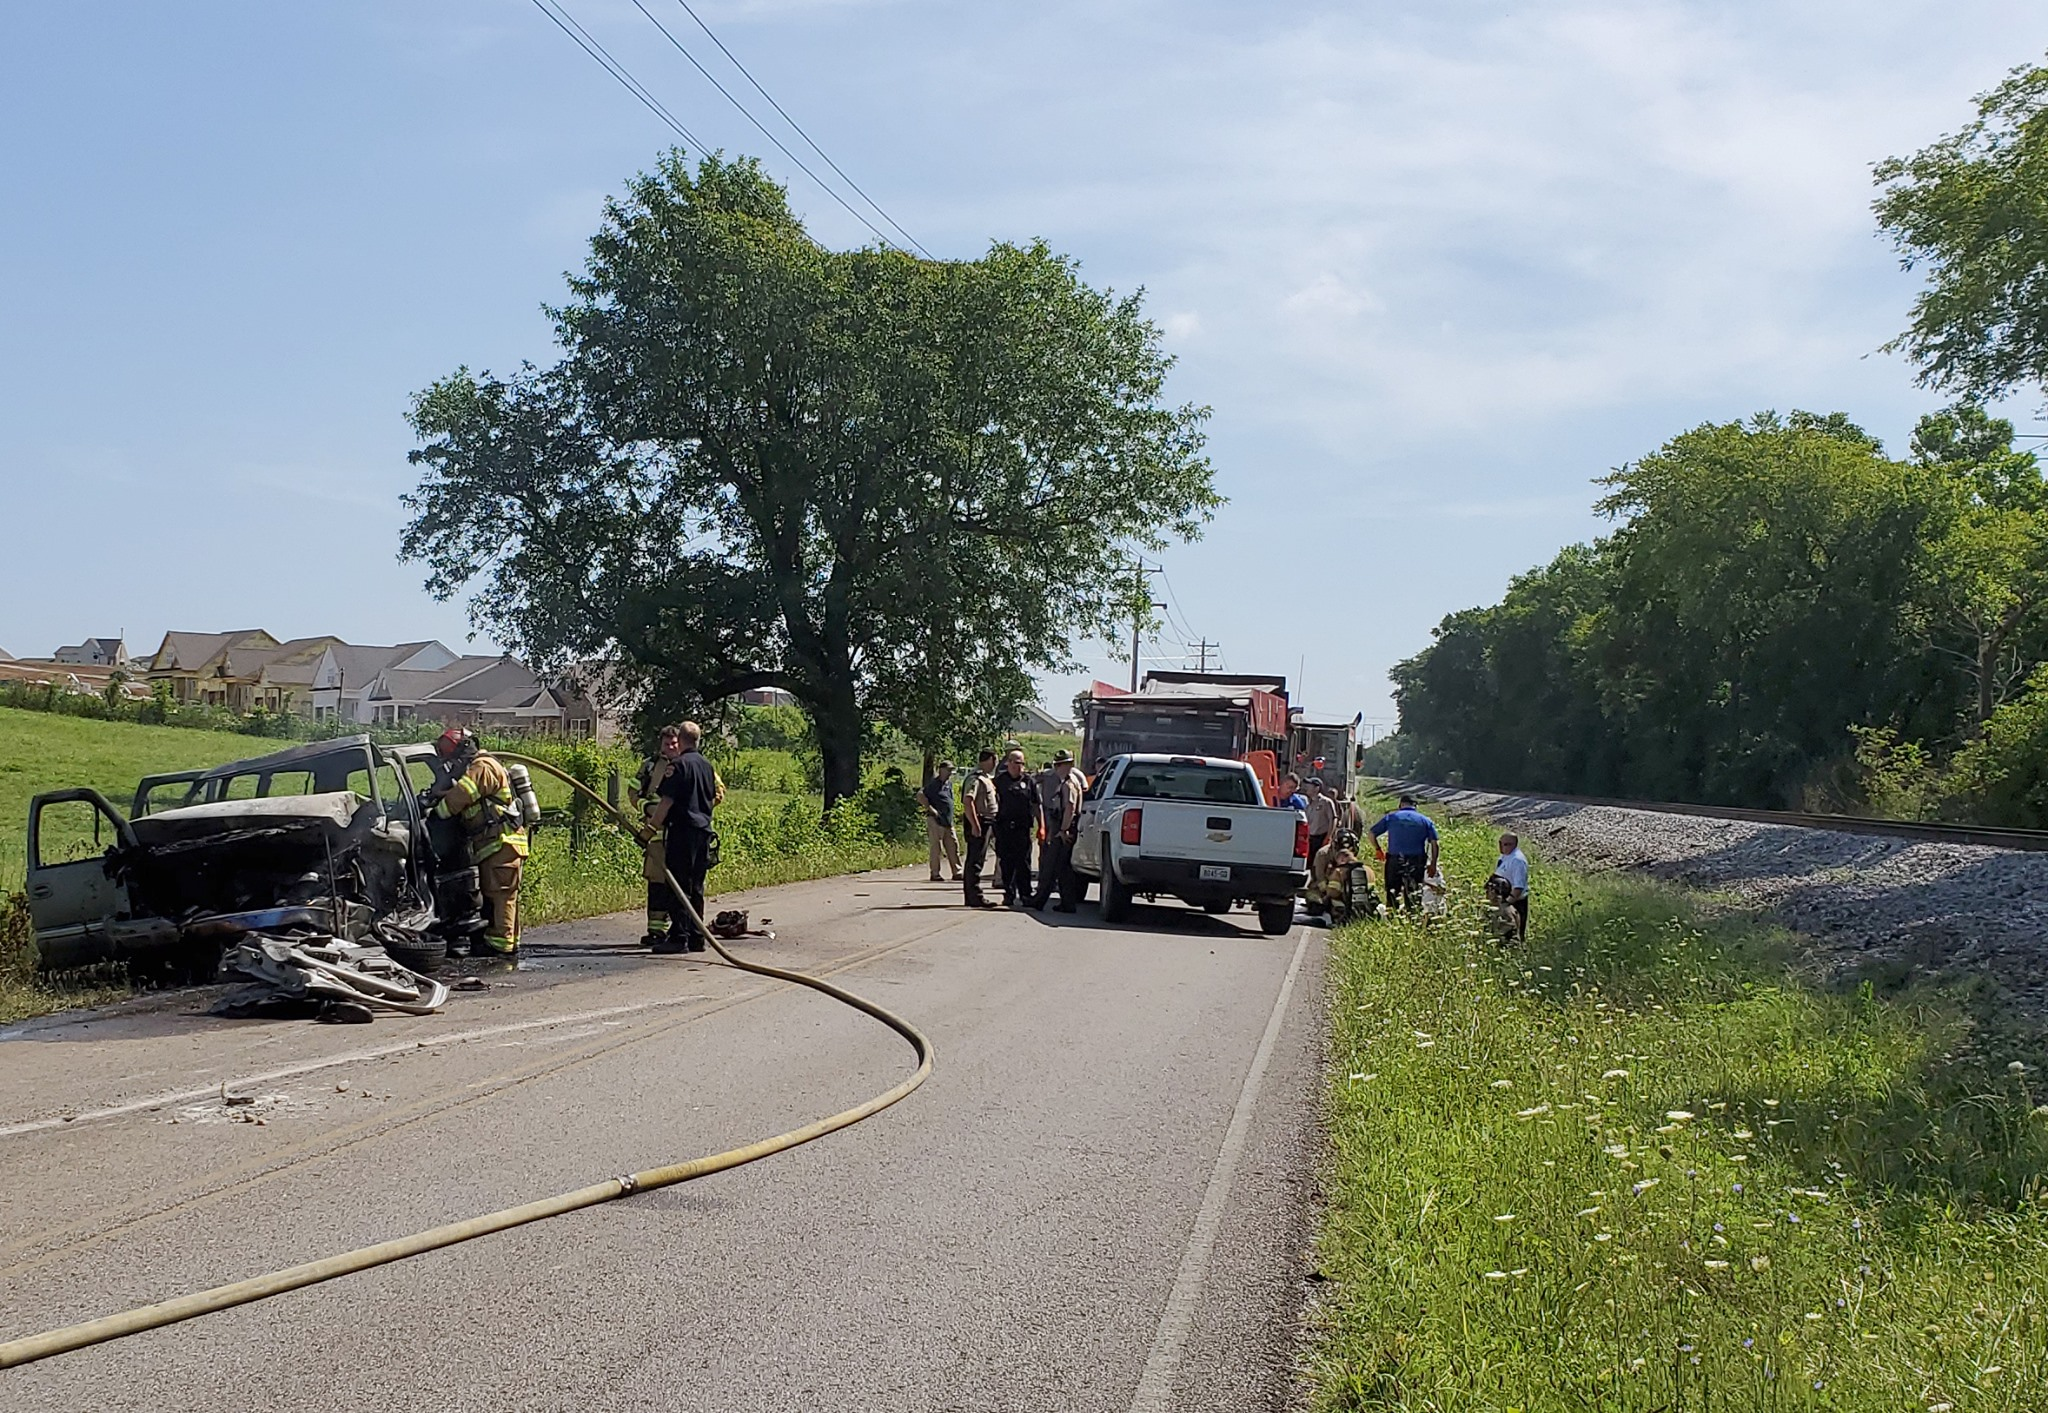 Man rescued from flaming vehicle near Spring Hill in 'stable condition'